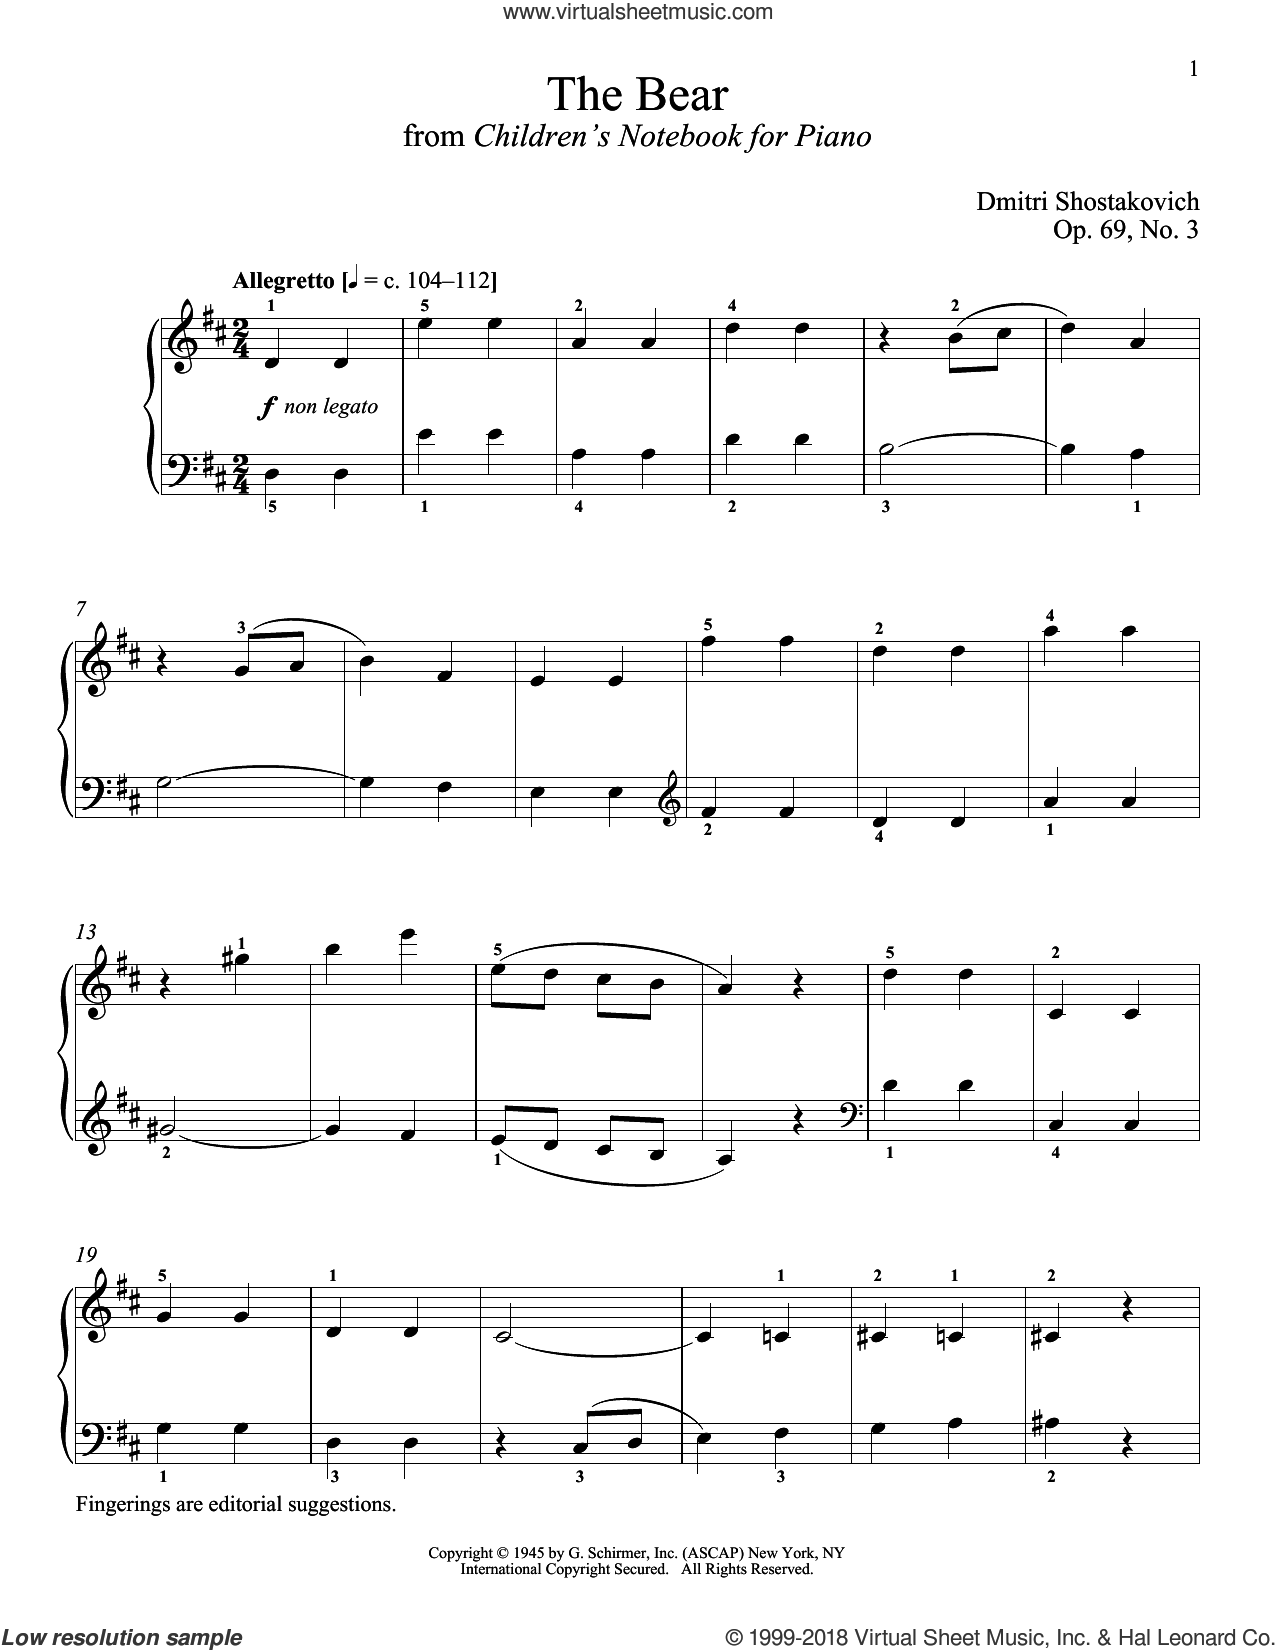 The Bear sheet music for piano solo by Dmitri Shostakovich